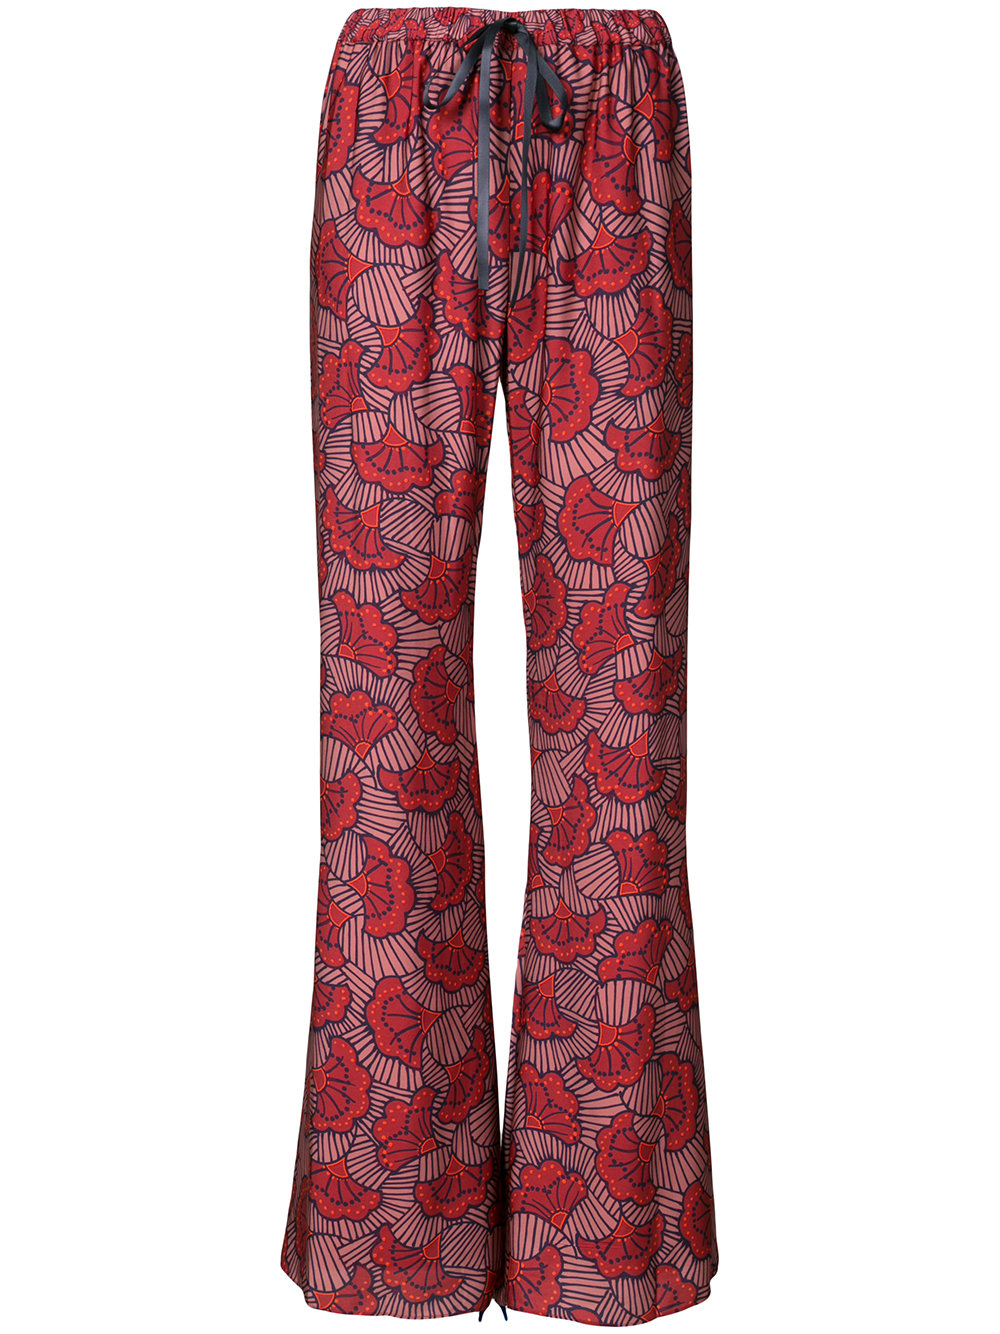 ALEXIS floral print trousers - $320